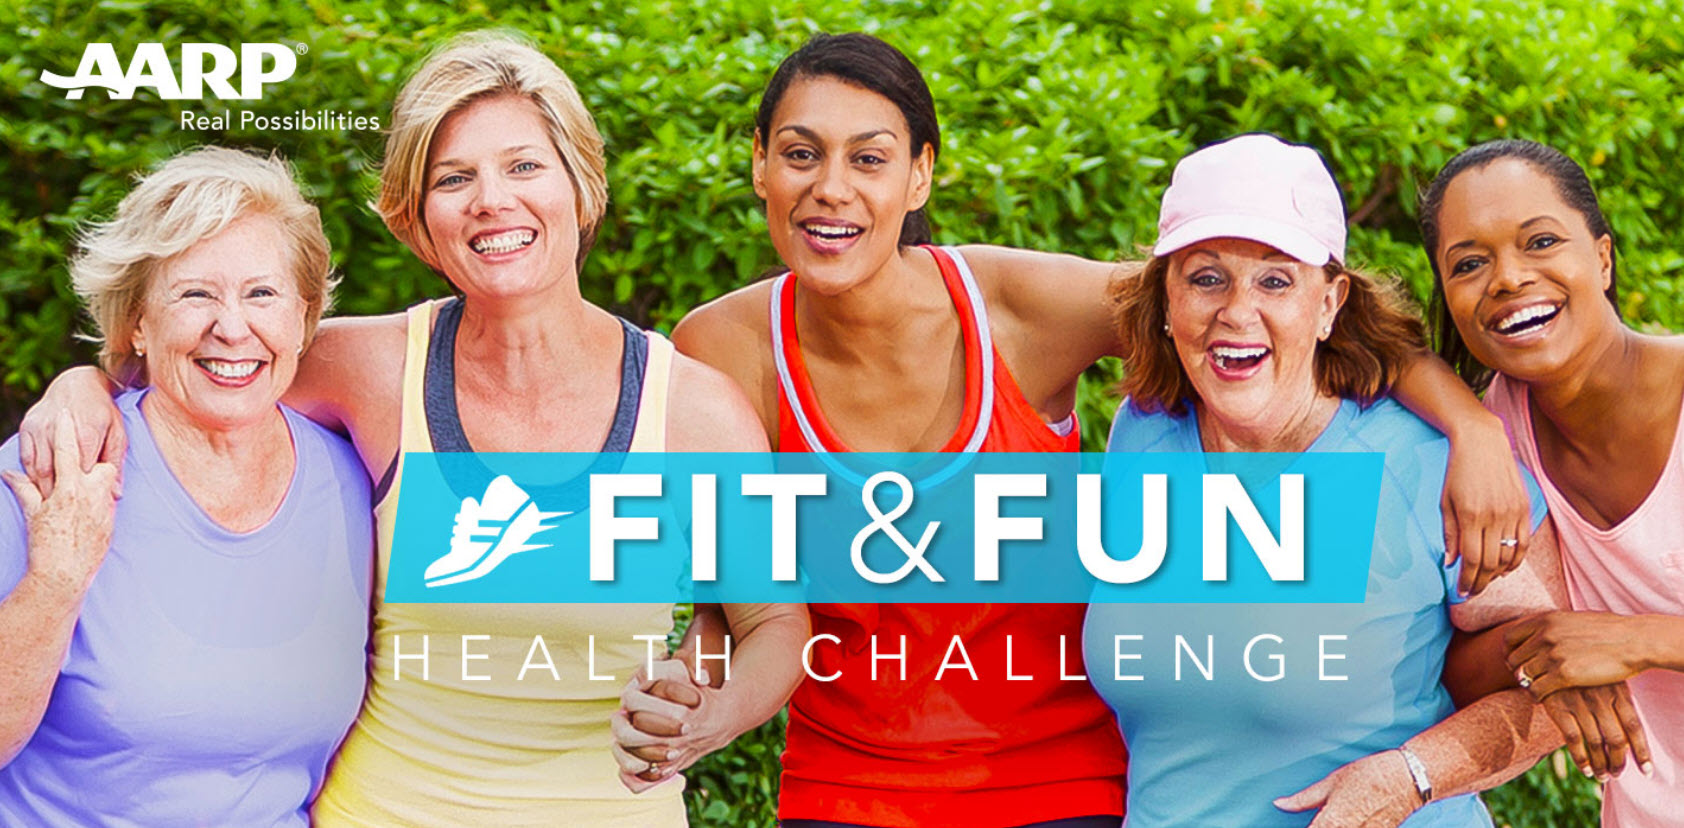 Enter the AARP Fit & Fun Health Sweepstakes (Daily Winners)